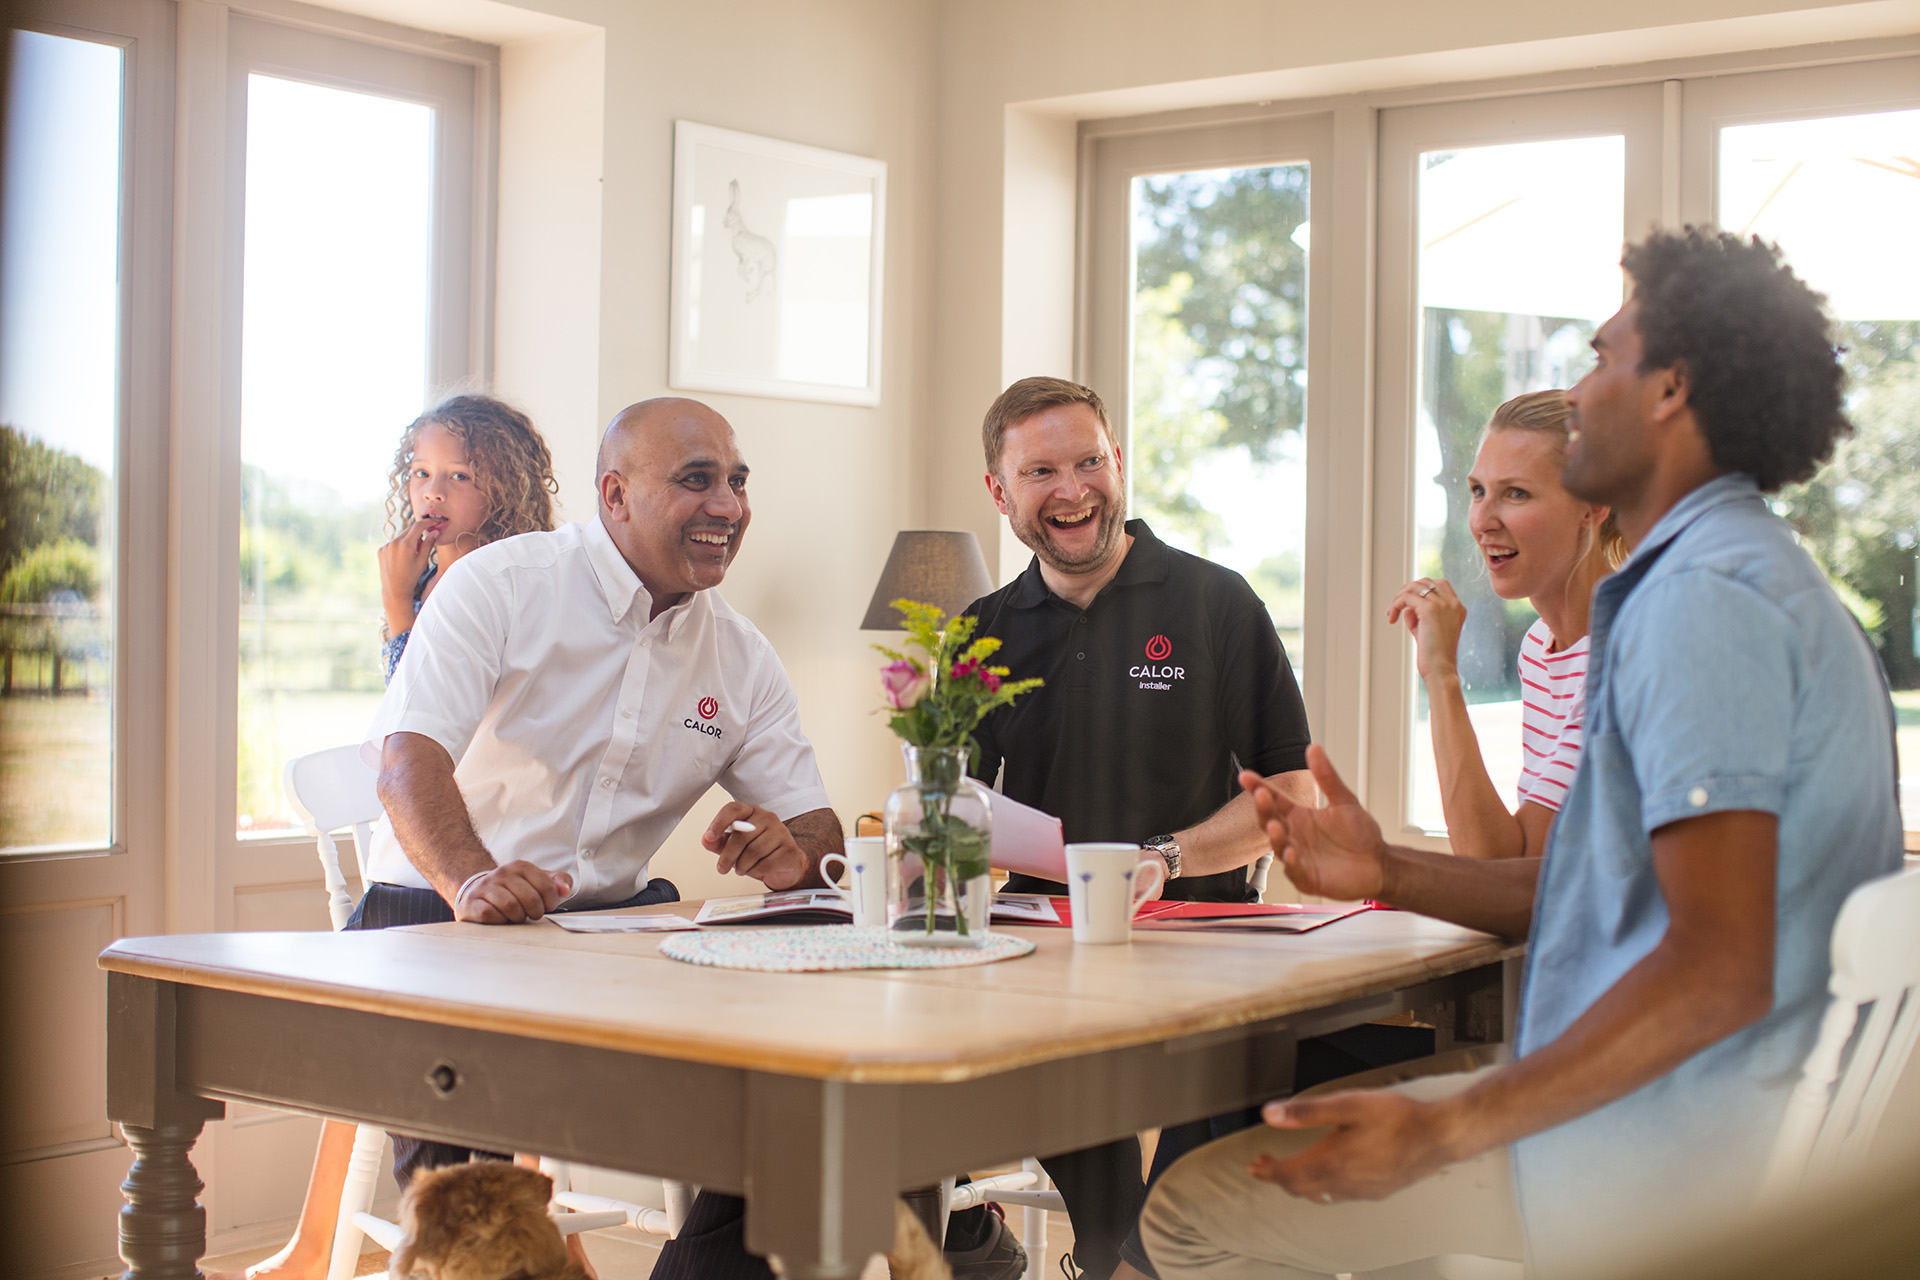 Two Calor employees and two Calor customers laughing around a kitchen table